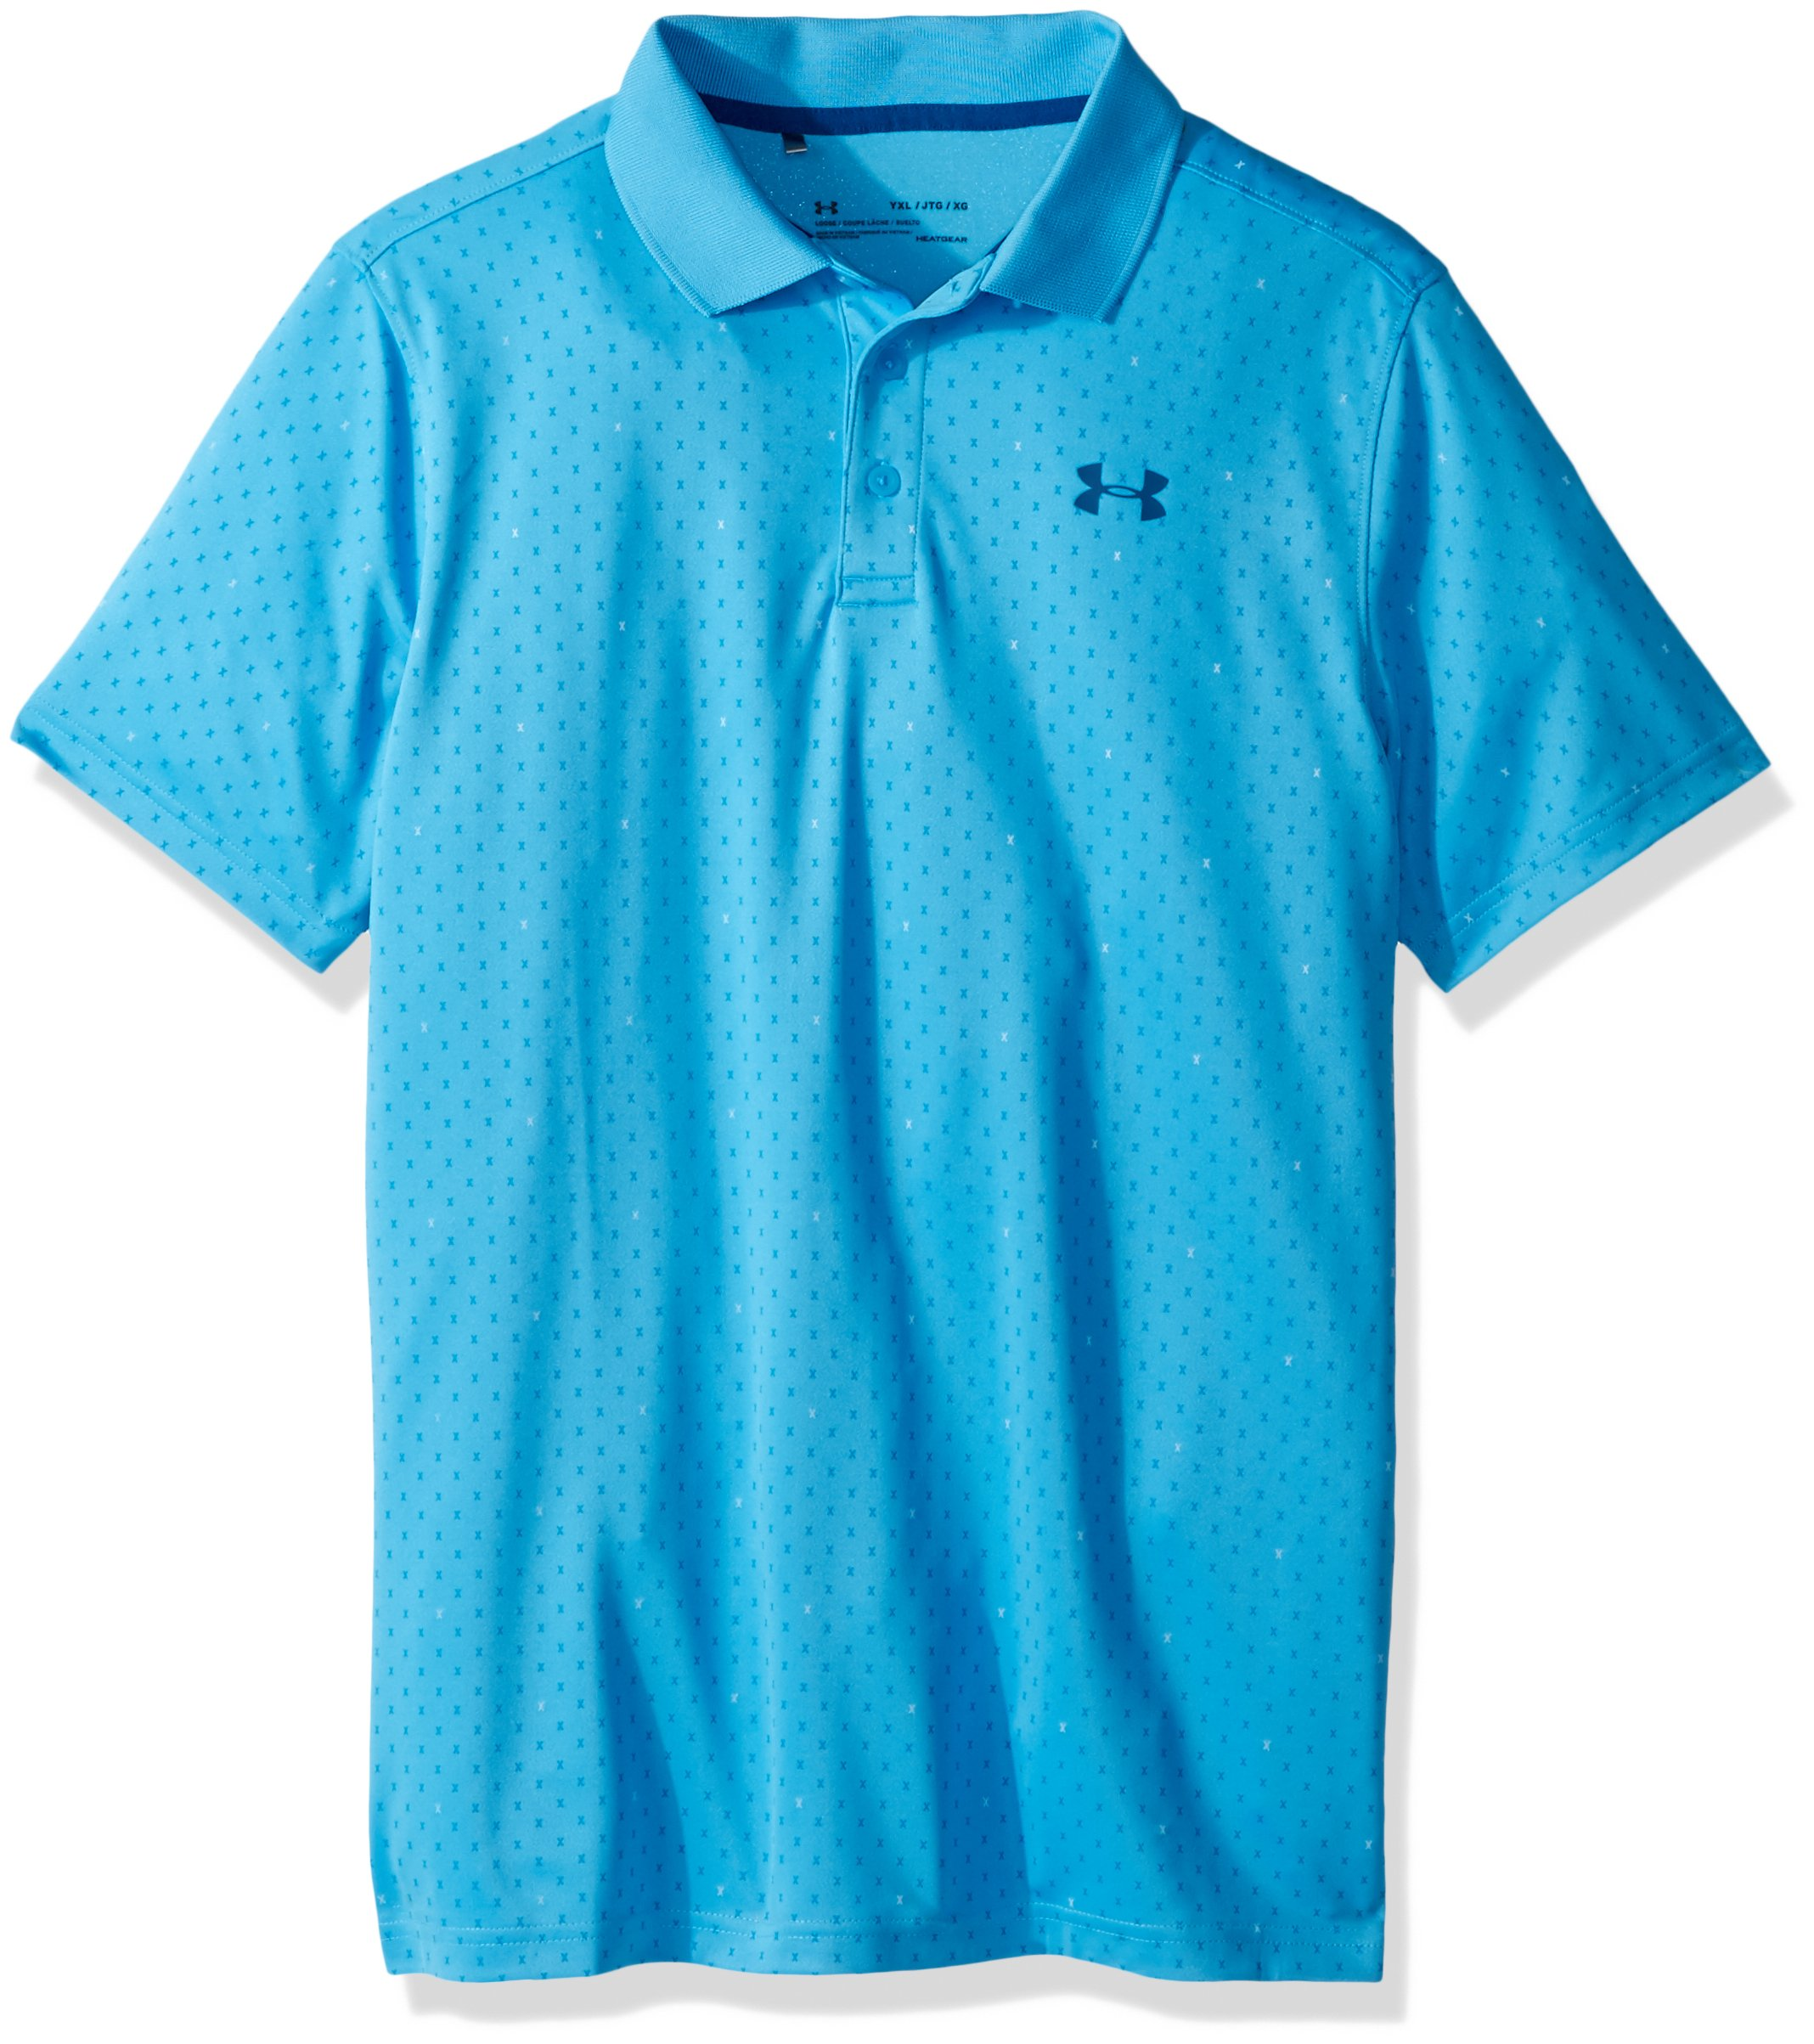 Under Armour Boys' Performance Novelty Polo, Canoe Blue (713)/Moroccan Blue, Youth Large